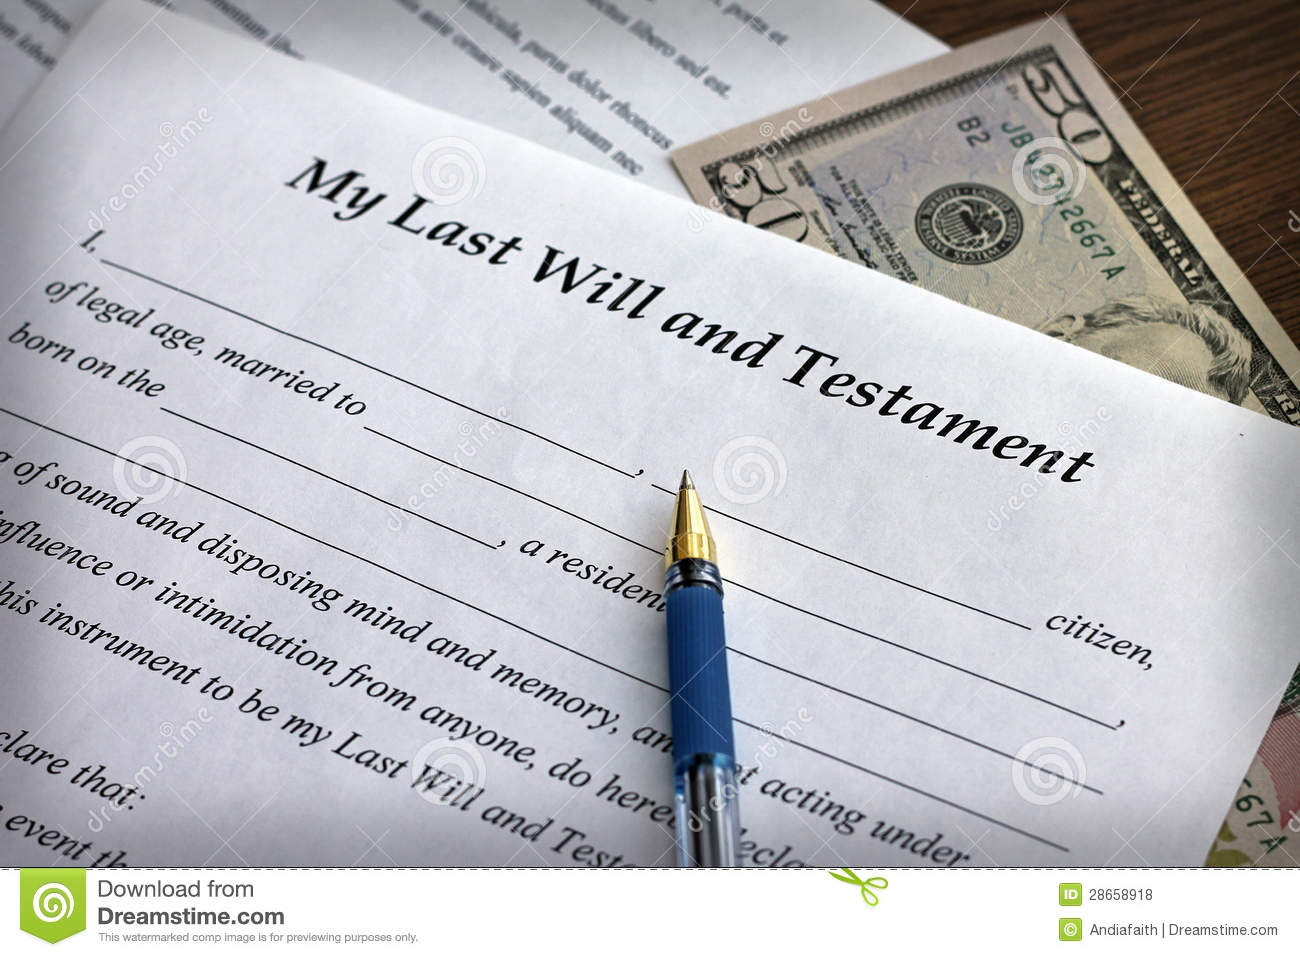 Last Will And Testament Form With Pen Stock Photo - Image of print ...